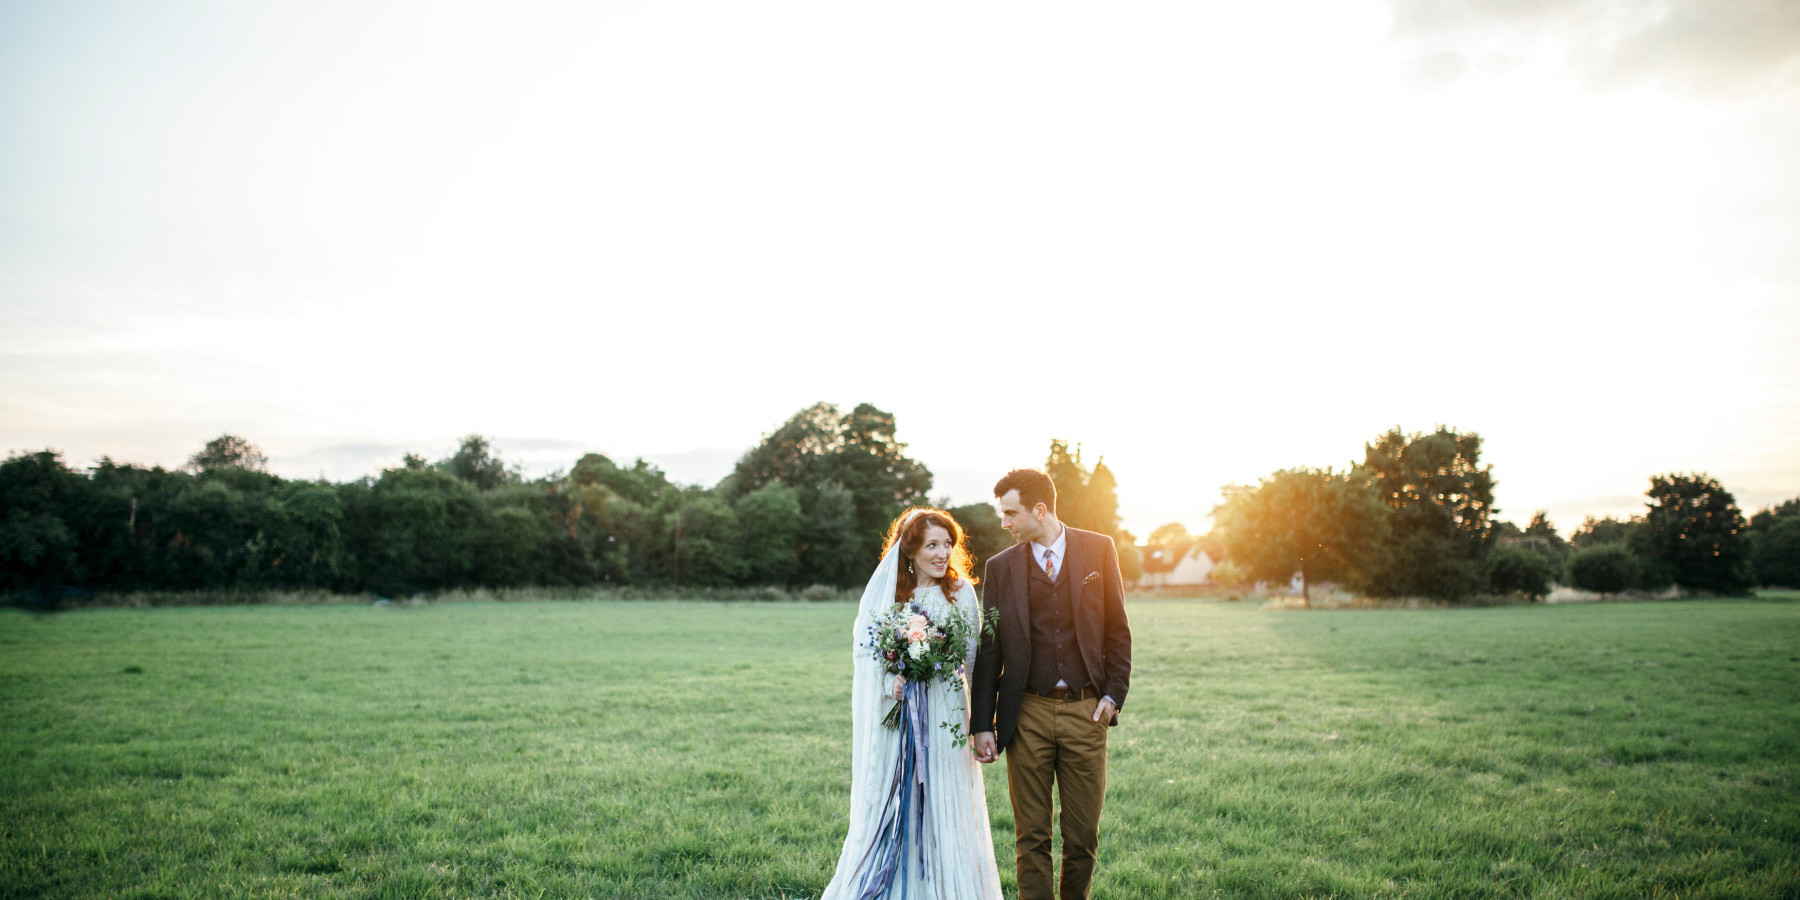 Whimsical Eclectic Homespun Wedding in a Tent, by London Wedding Photographer, Green Antlers Photography